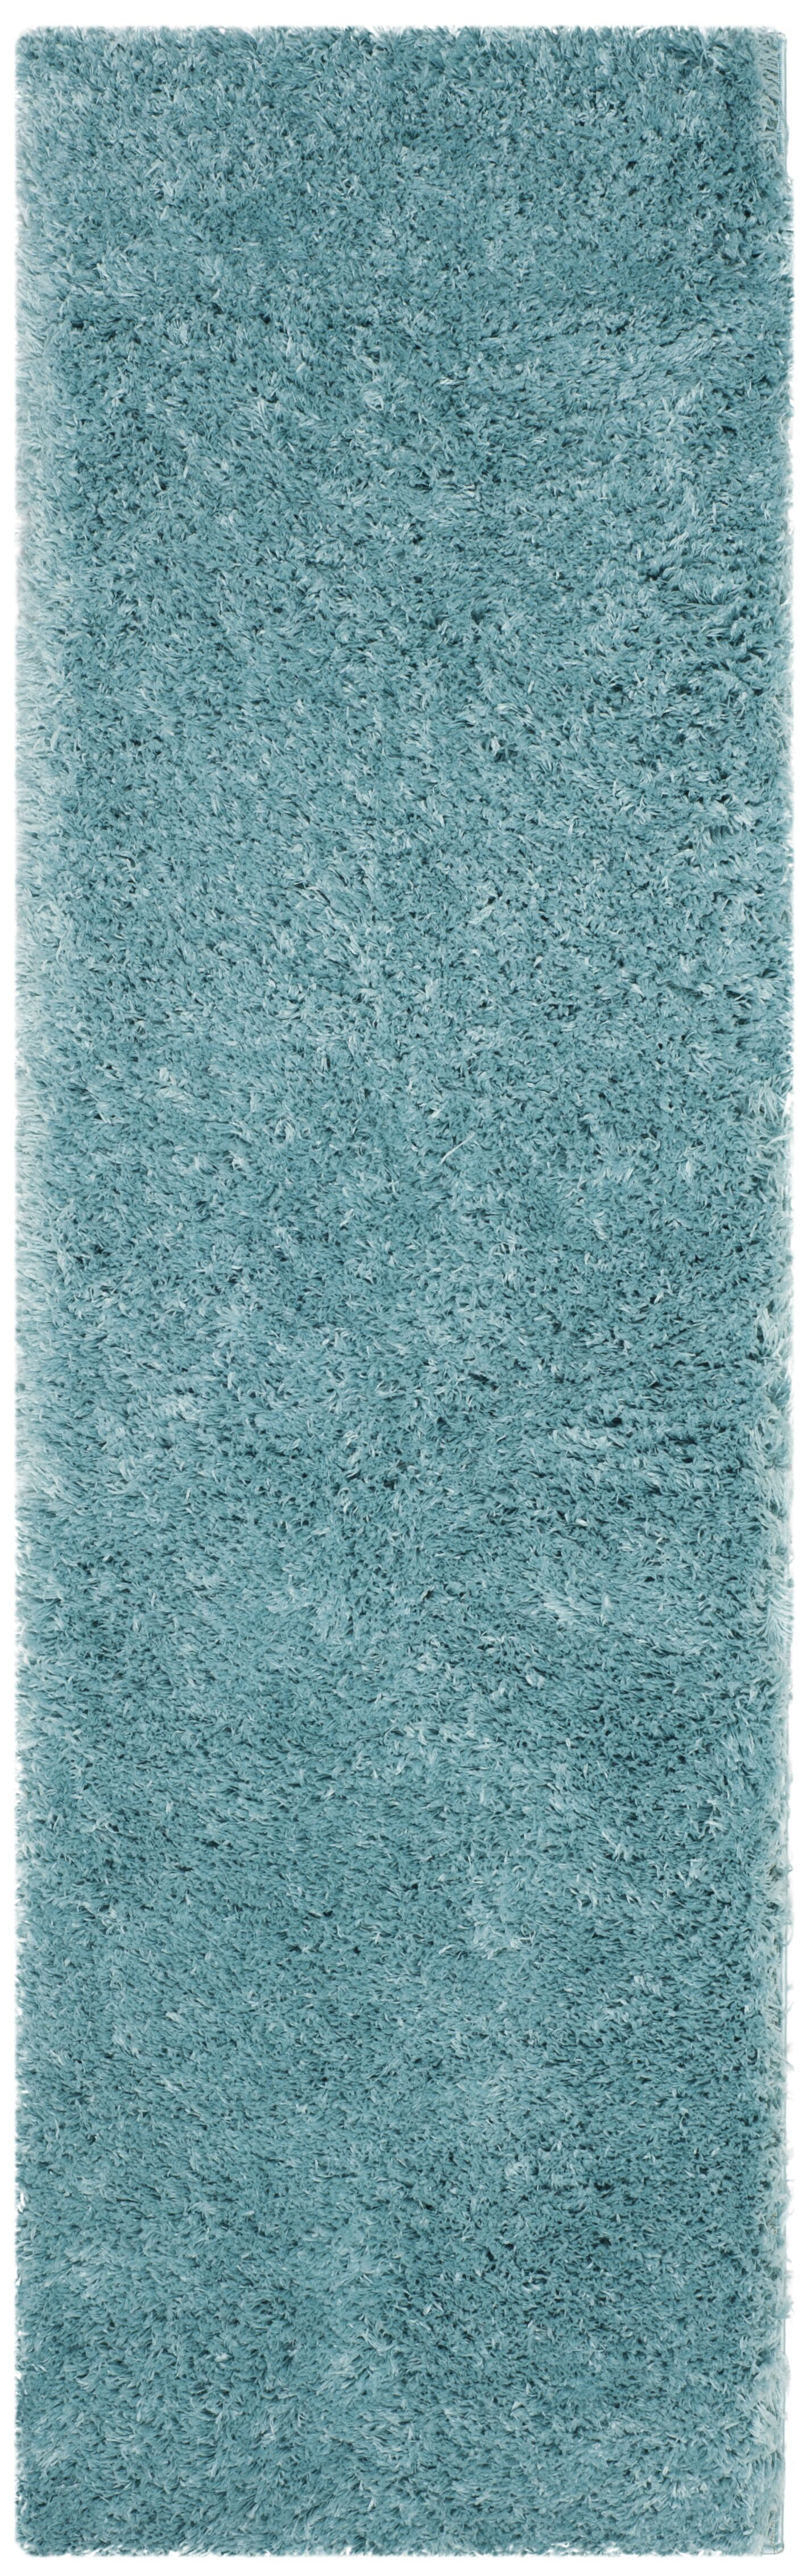 Hermina Light Turquoise Area Rug Rug Size: Runner 2'3